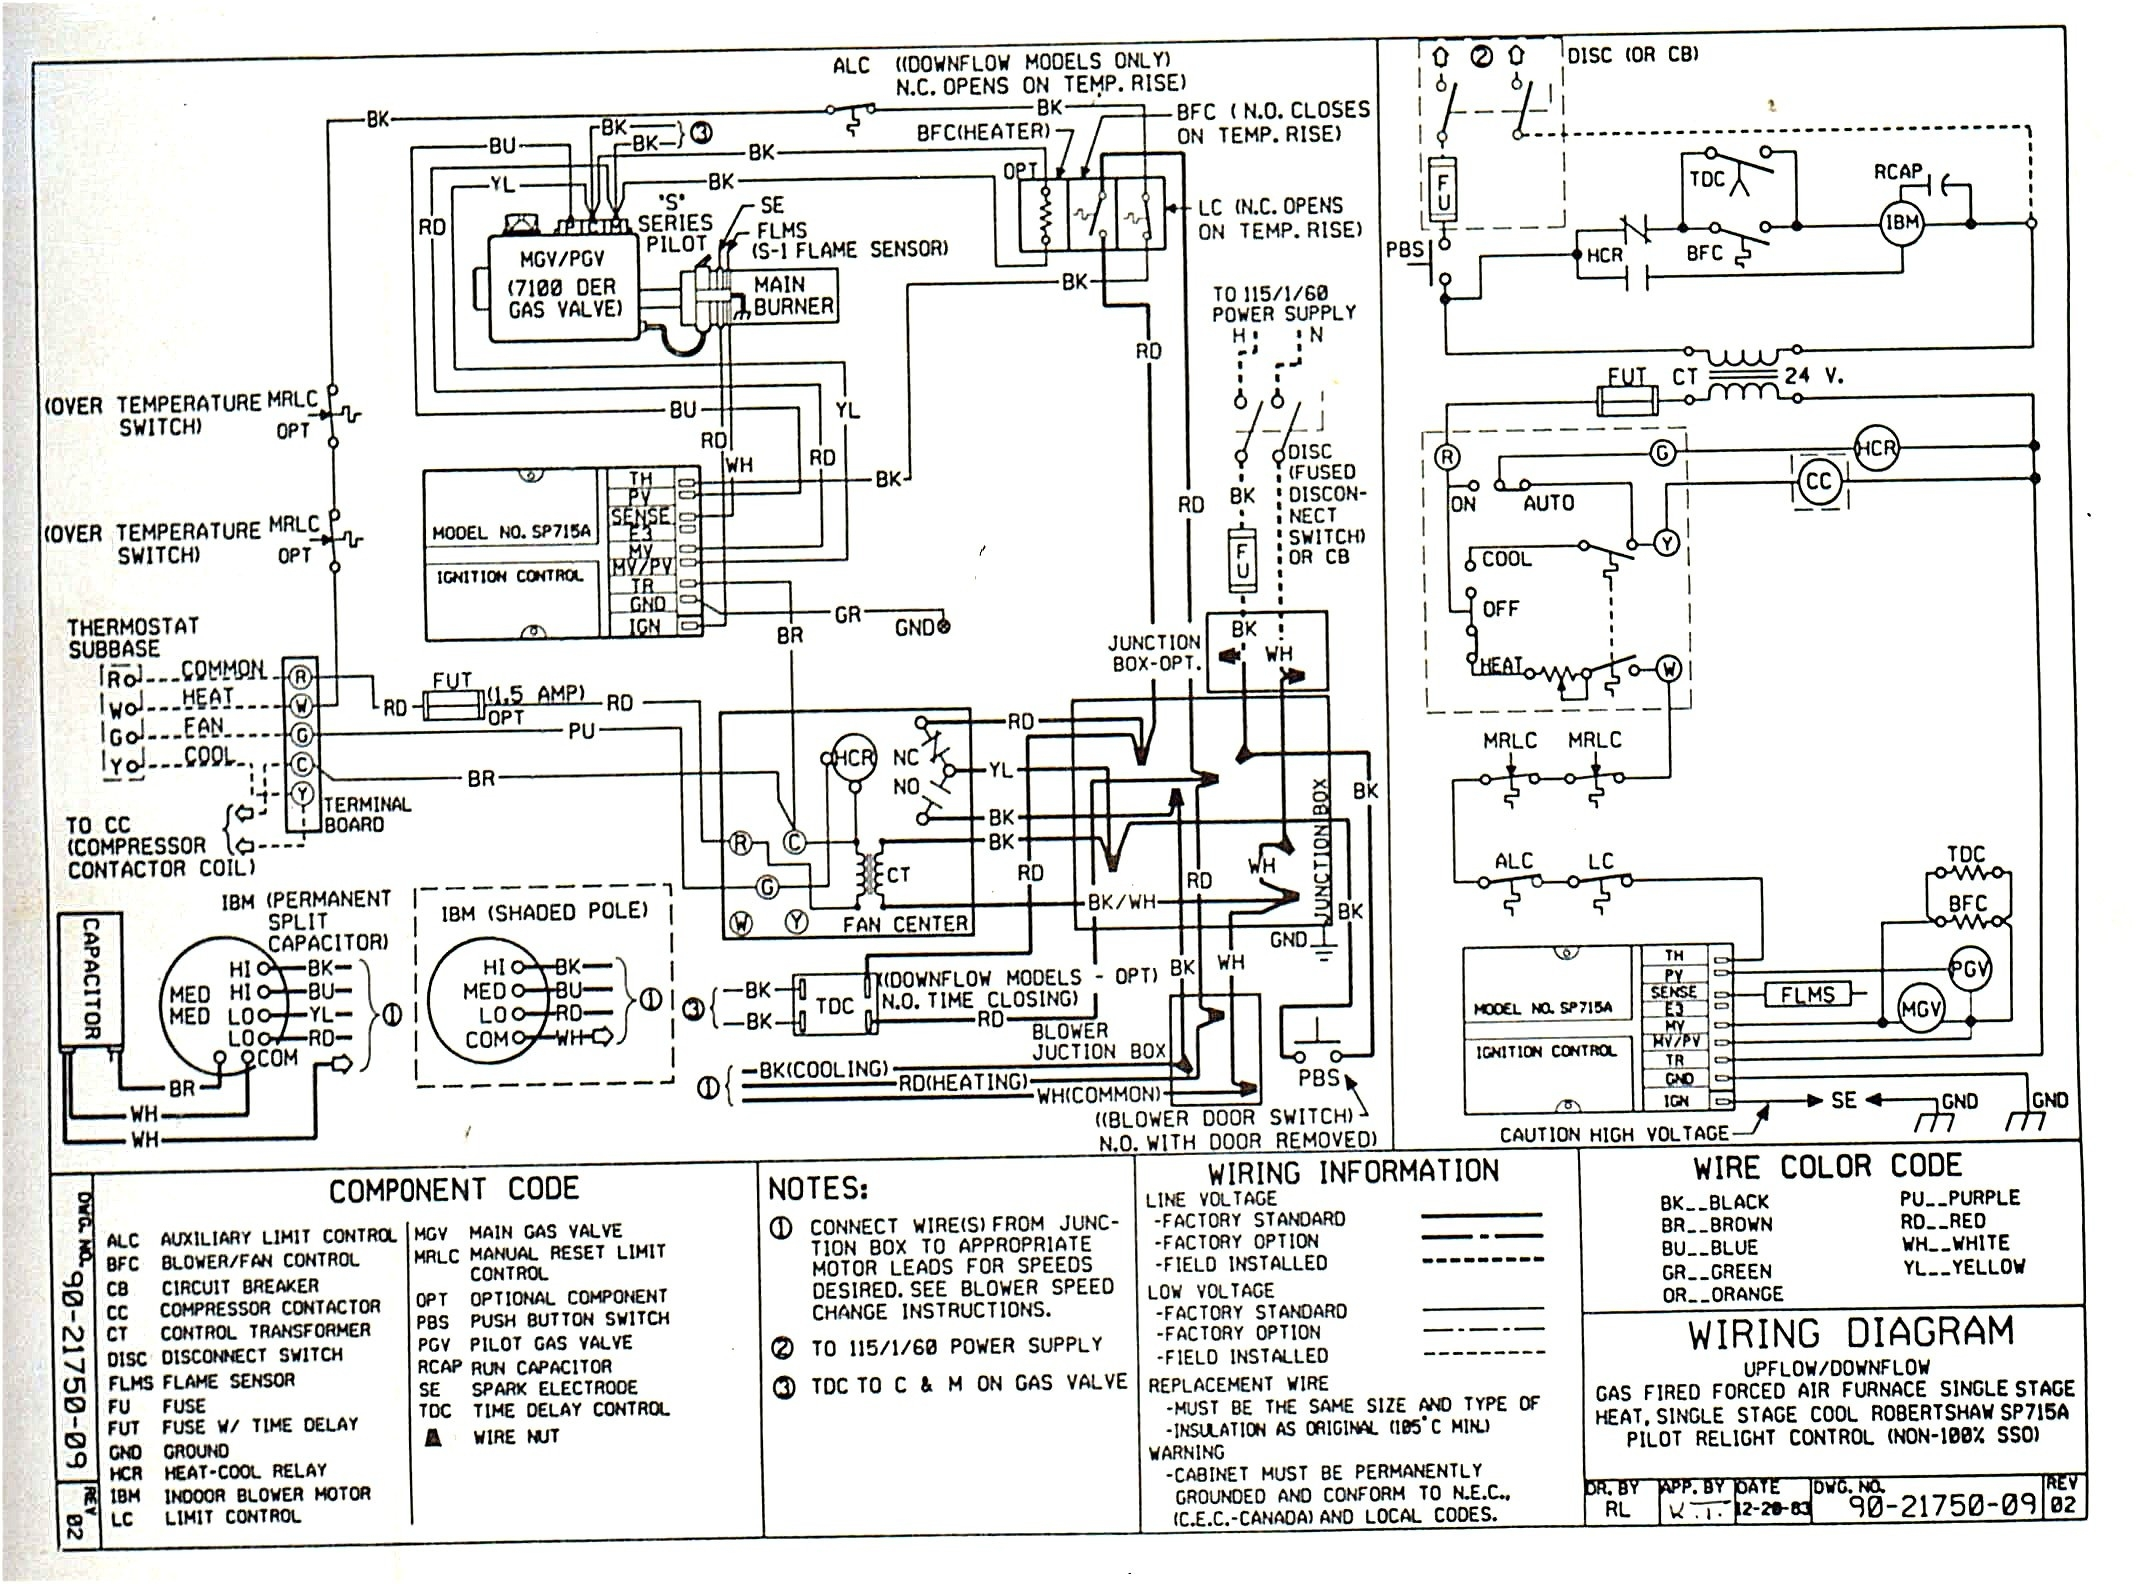 wiring diagram for 5 ton hvac